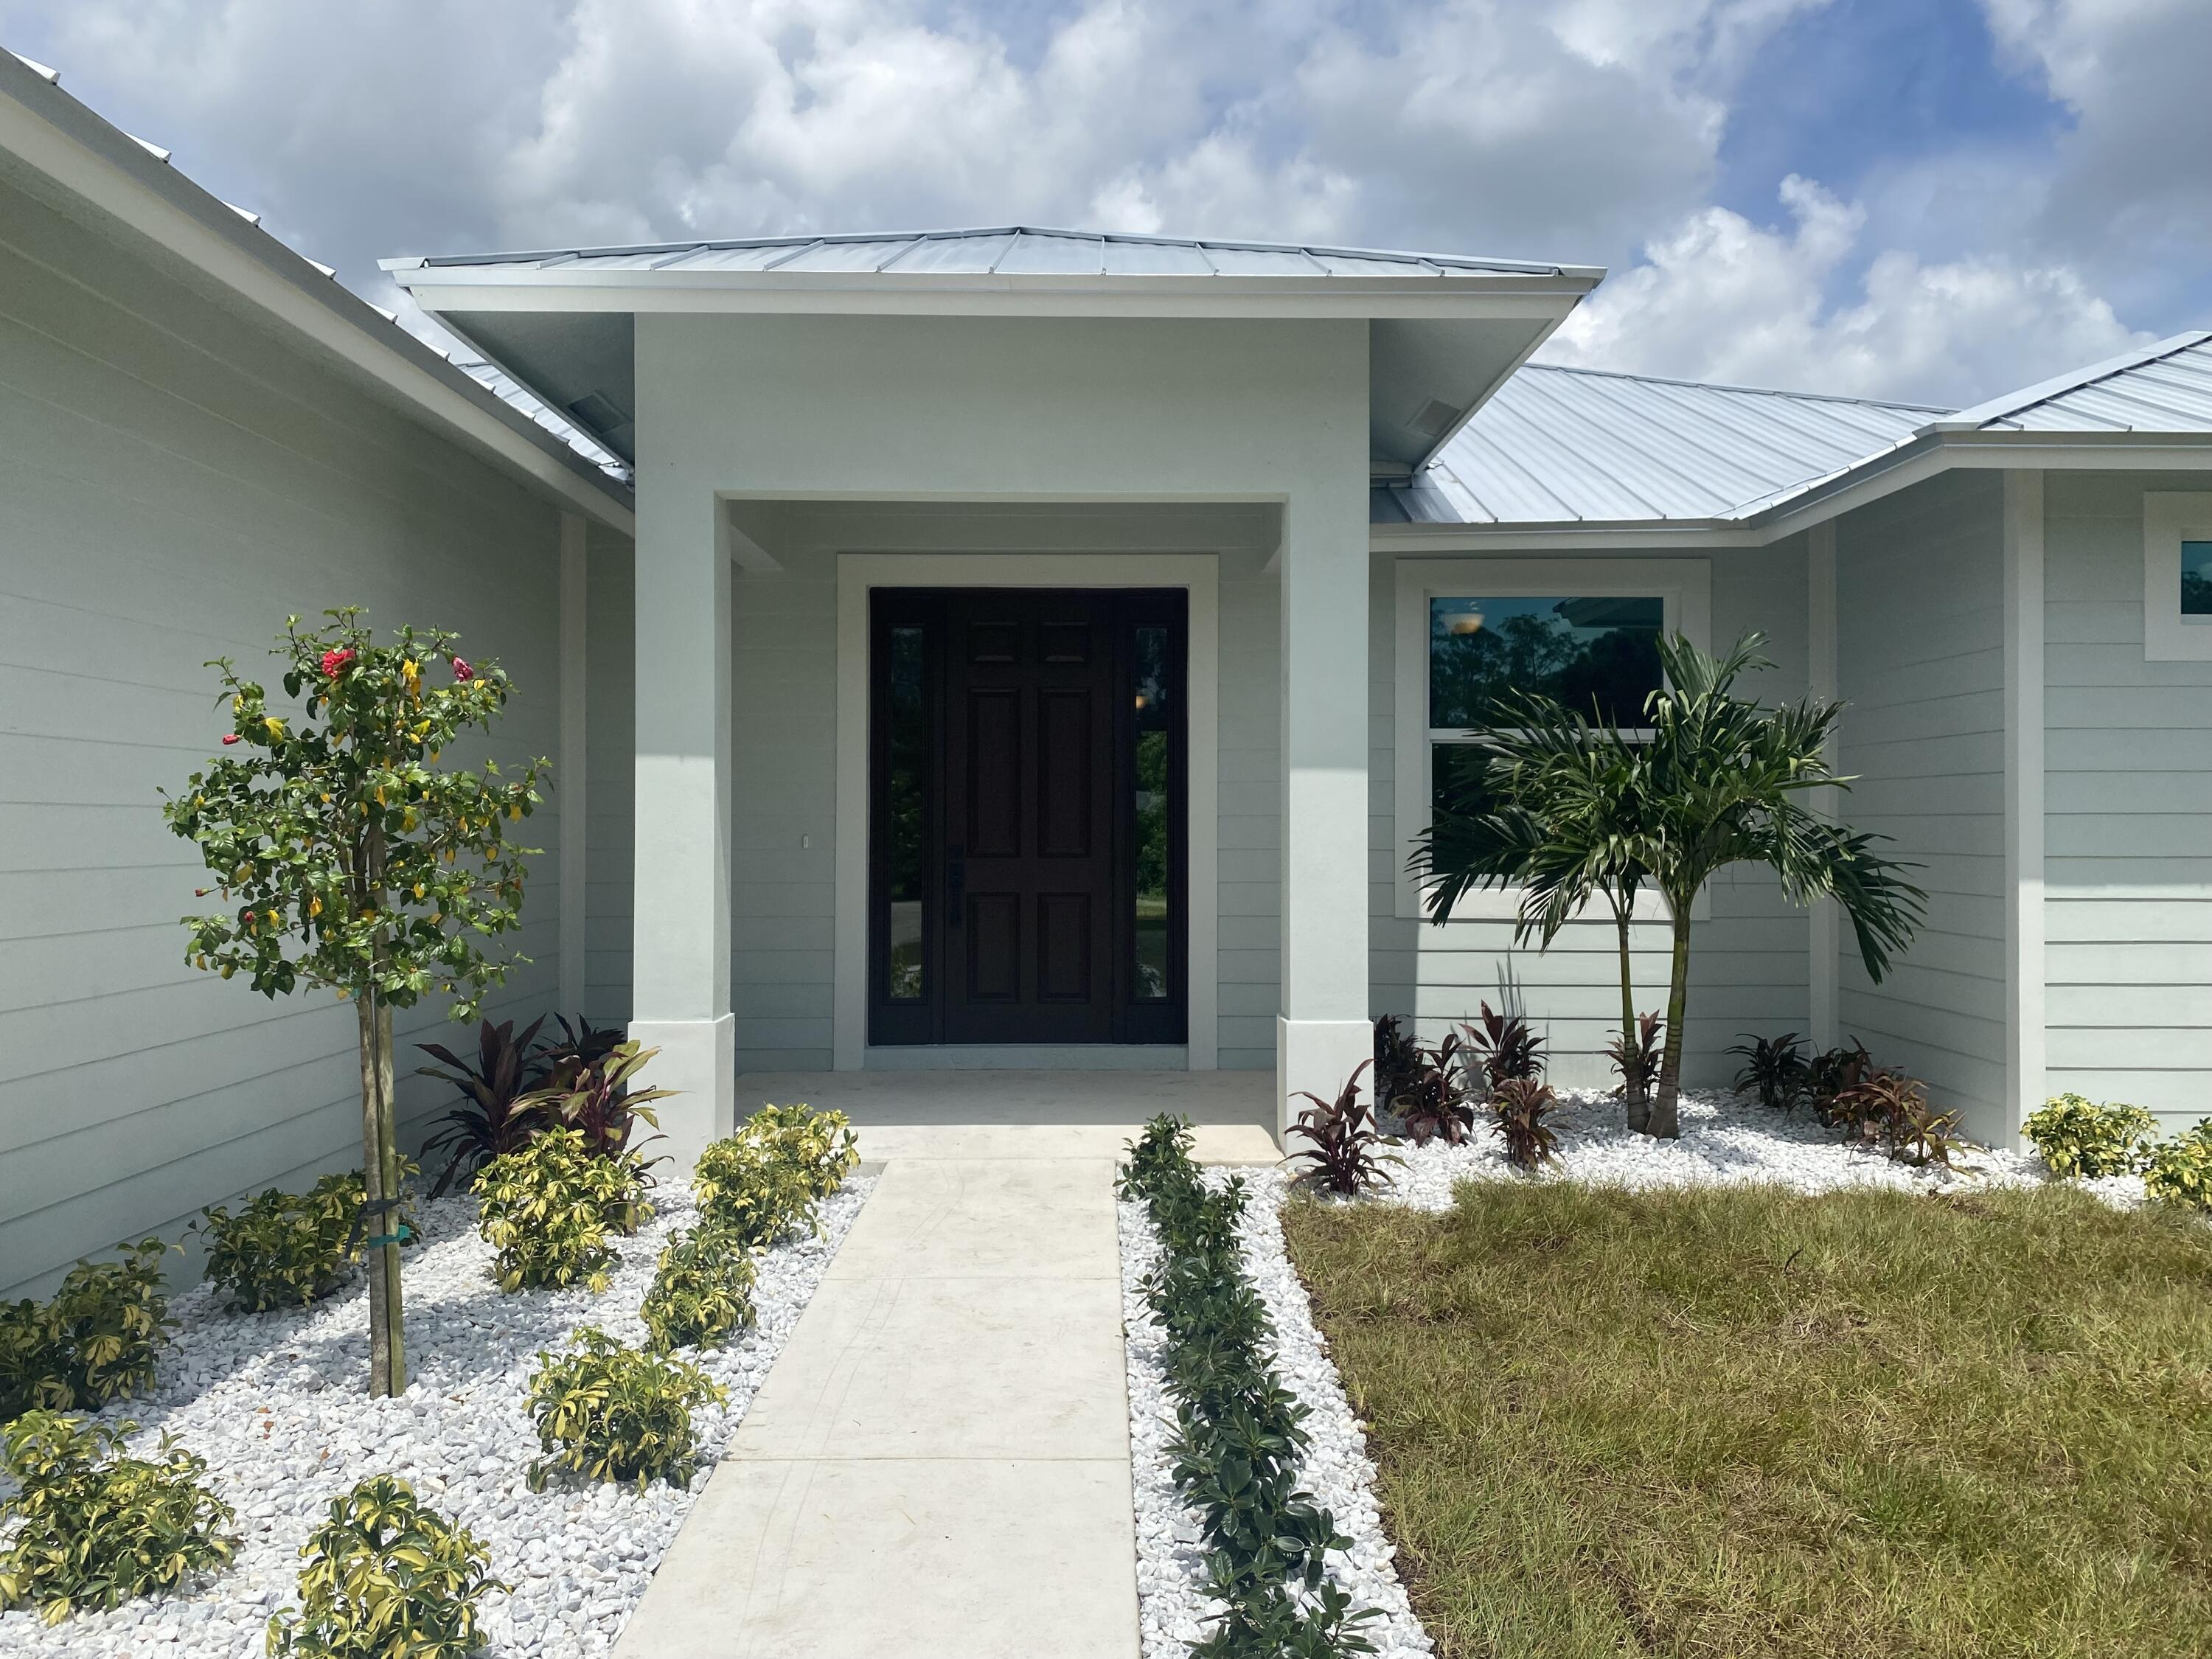 This brand-new construction home is MOVE IN READY!! It boasts a contemporary feel while also adding warmth with outstanding flow between the main living areas & the spacious covered lanai. Inside, the great room & dining room showcases decorative tray ceiling accents, French & sliding glass doors to the lanai & total openness to the island kitchen with quartz counter tops, custom cabinetry, top of the line appliances, & pantry. The den & half bath is adjacent to the great room. The private master suite incl., a tray ceiling, French doors to the lanai, a plush bath & walk-in closets. There are 2 additional bedrooms with a guest bath. Other features incl. Hurricane impact doors & windows, seamless metal roof, eight-foot doors throughout.